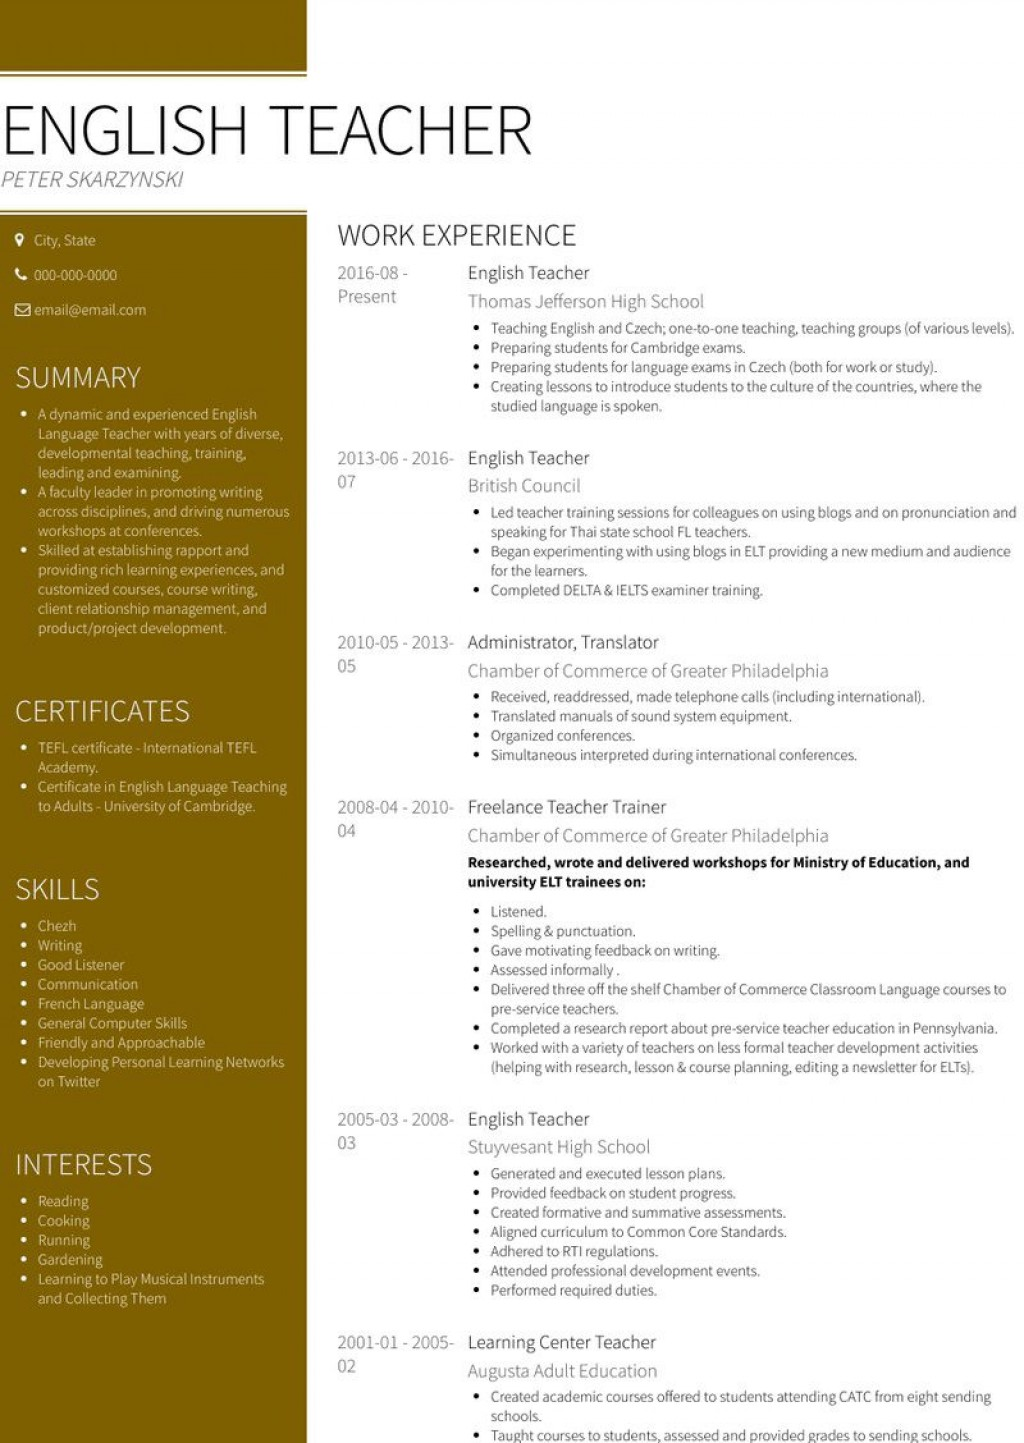 007 Archaicawful Resume Template For Teacher High Resolution  Free Download Australia Microsoft Word 2007Large